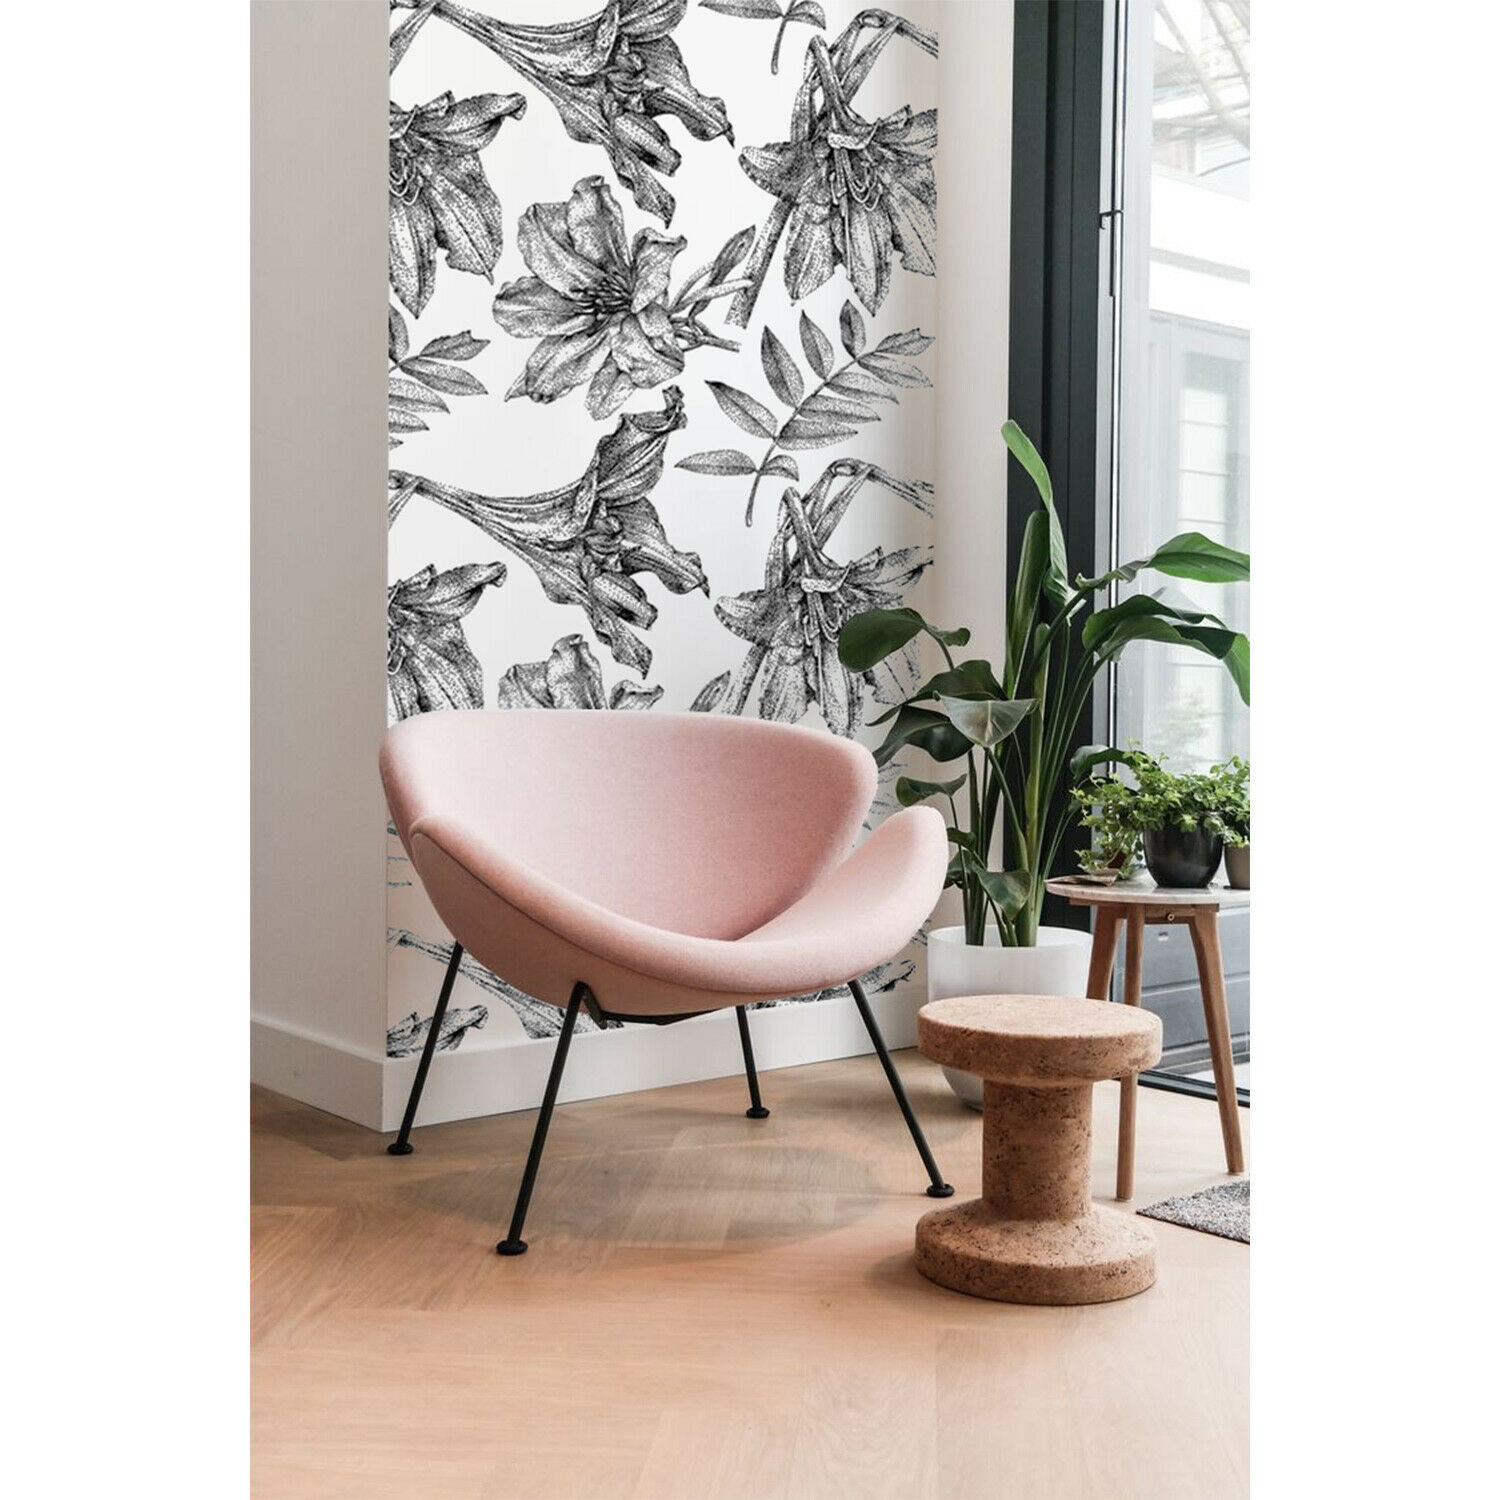 Dotted Lillies removable wallpaper Floral mural Flowers wall decor self-adhesive